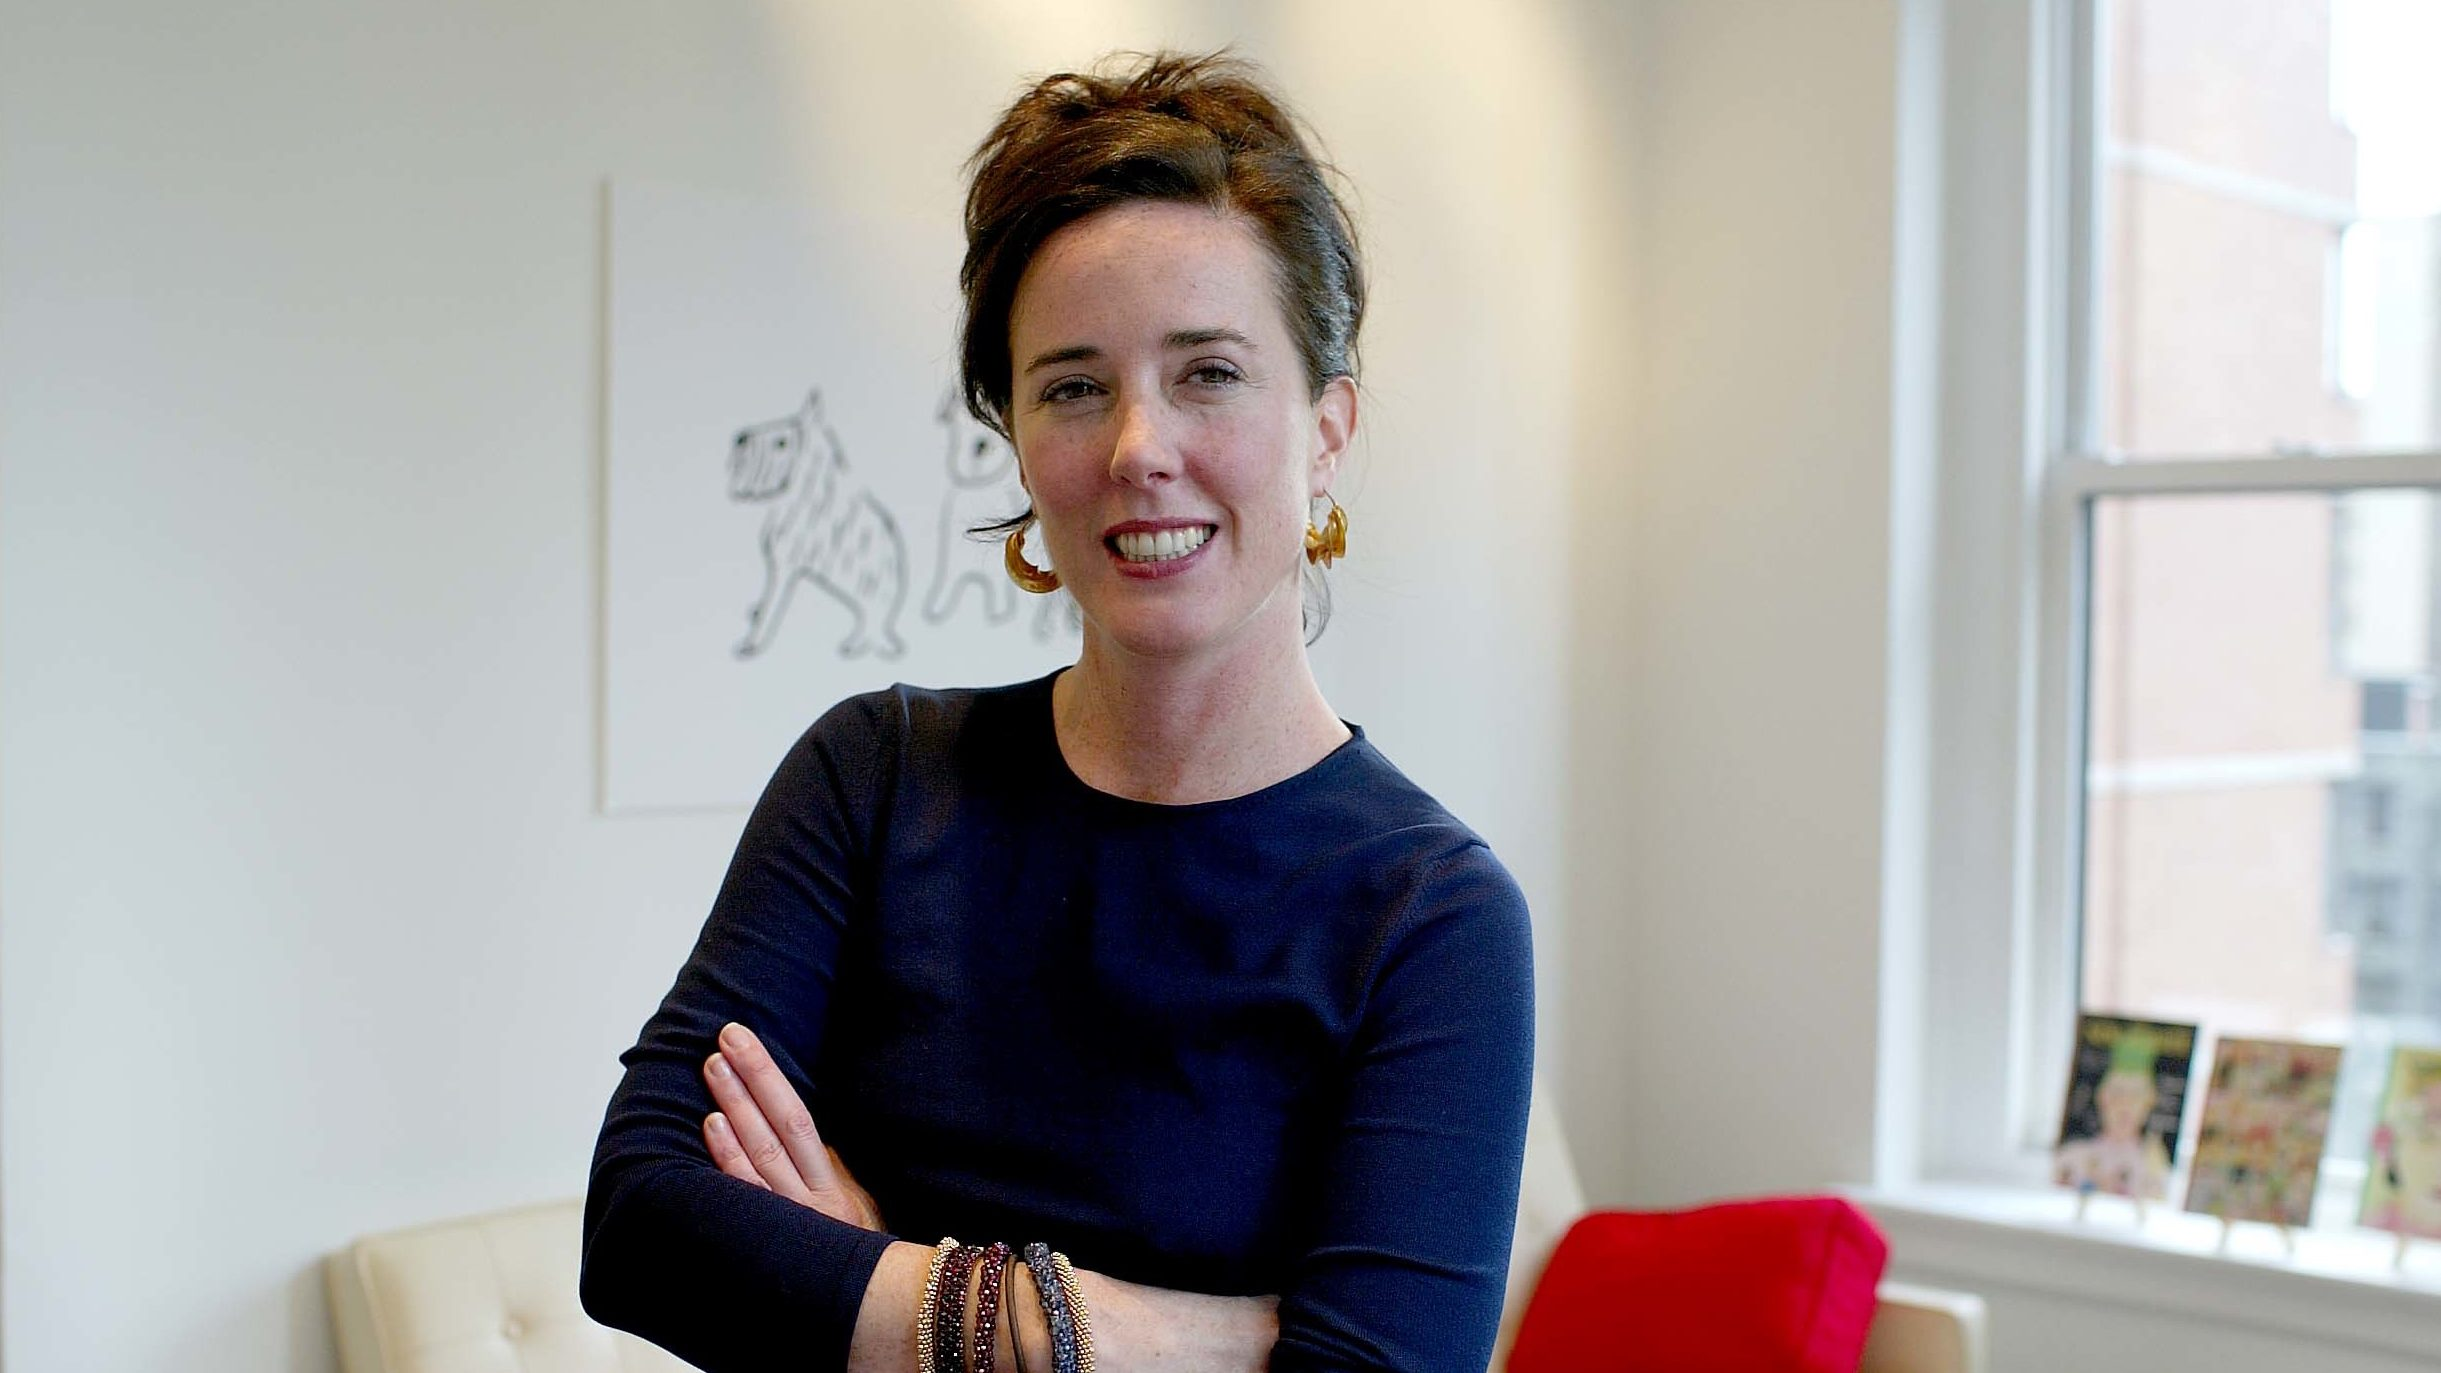 Kate Spade's Best Friend Pens Essay on Her Legacy 1 Year After Death: 'She Lit Up Every Room She Entered'